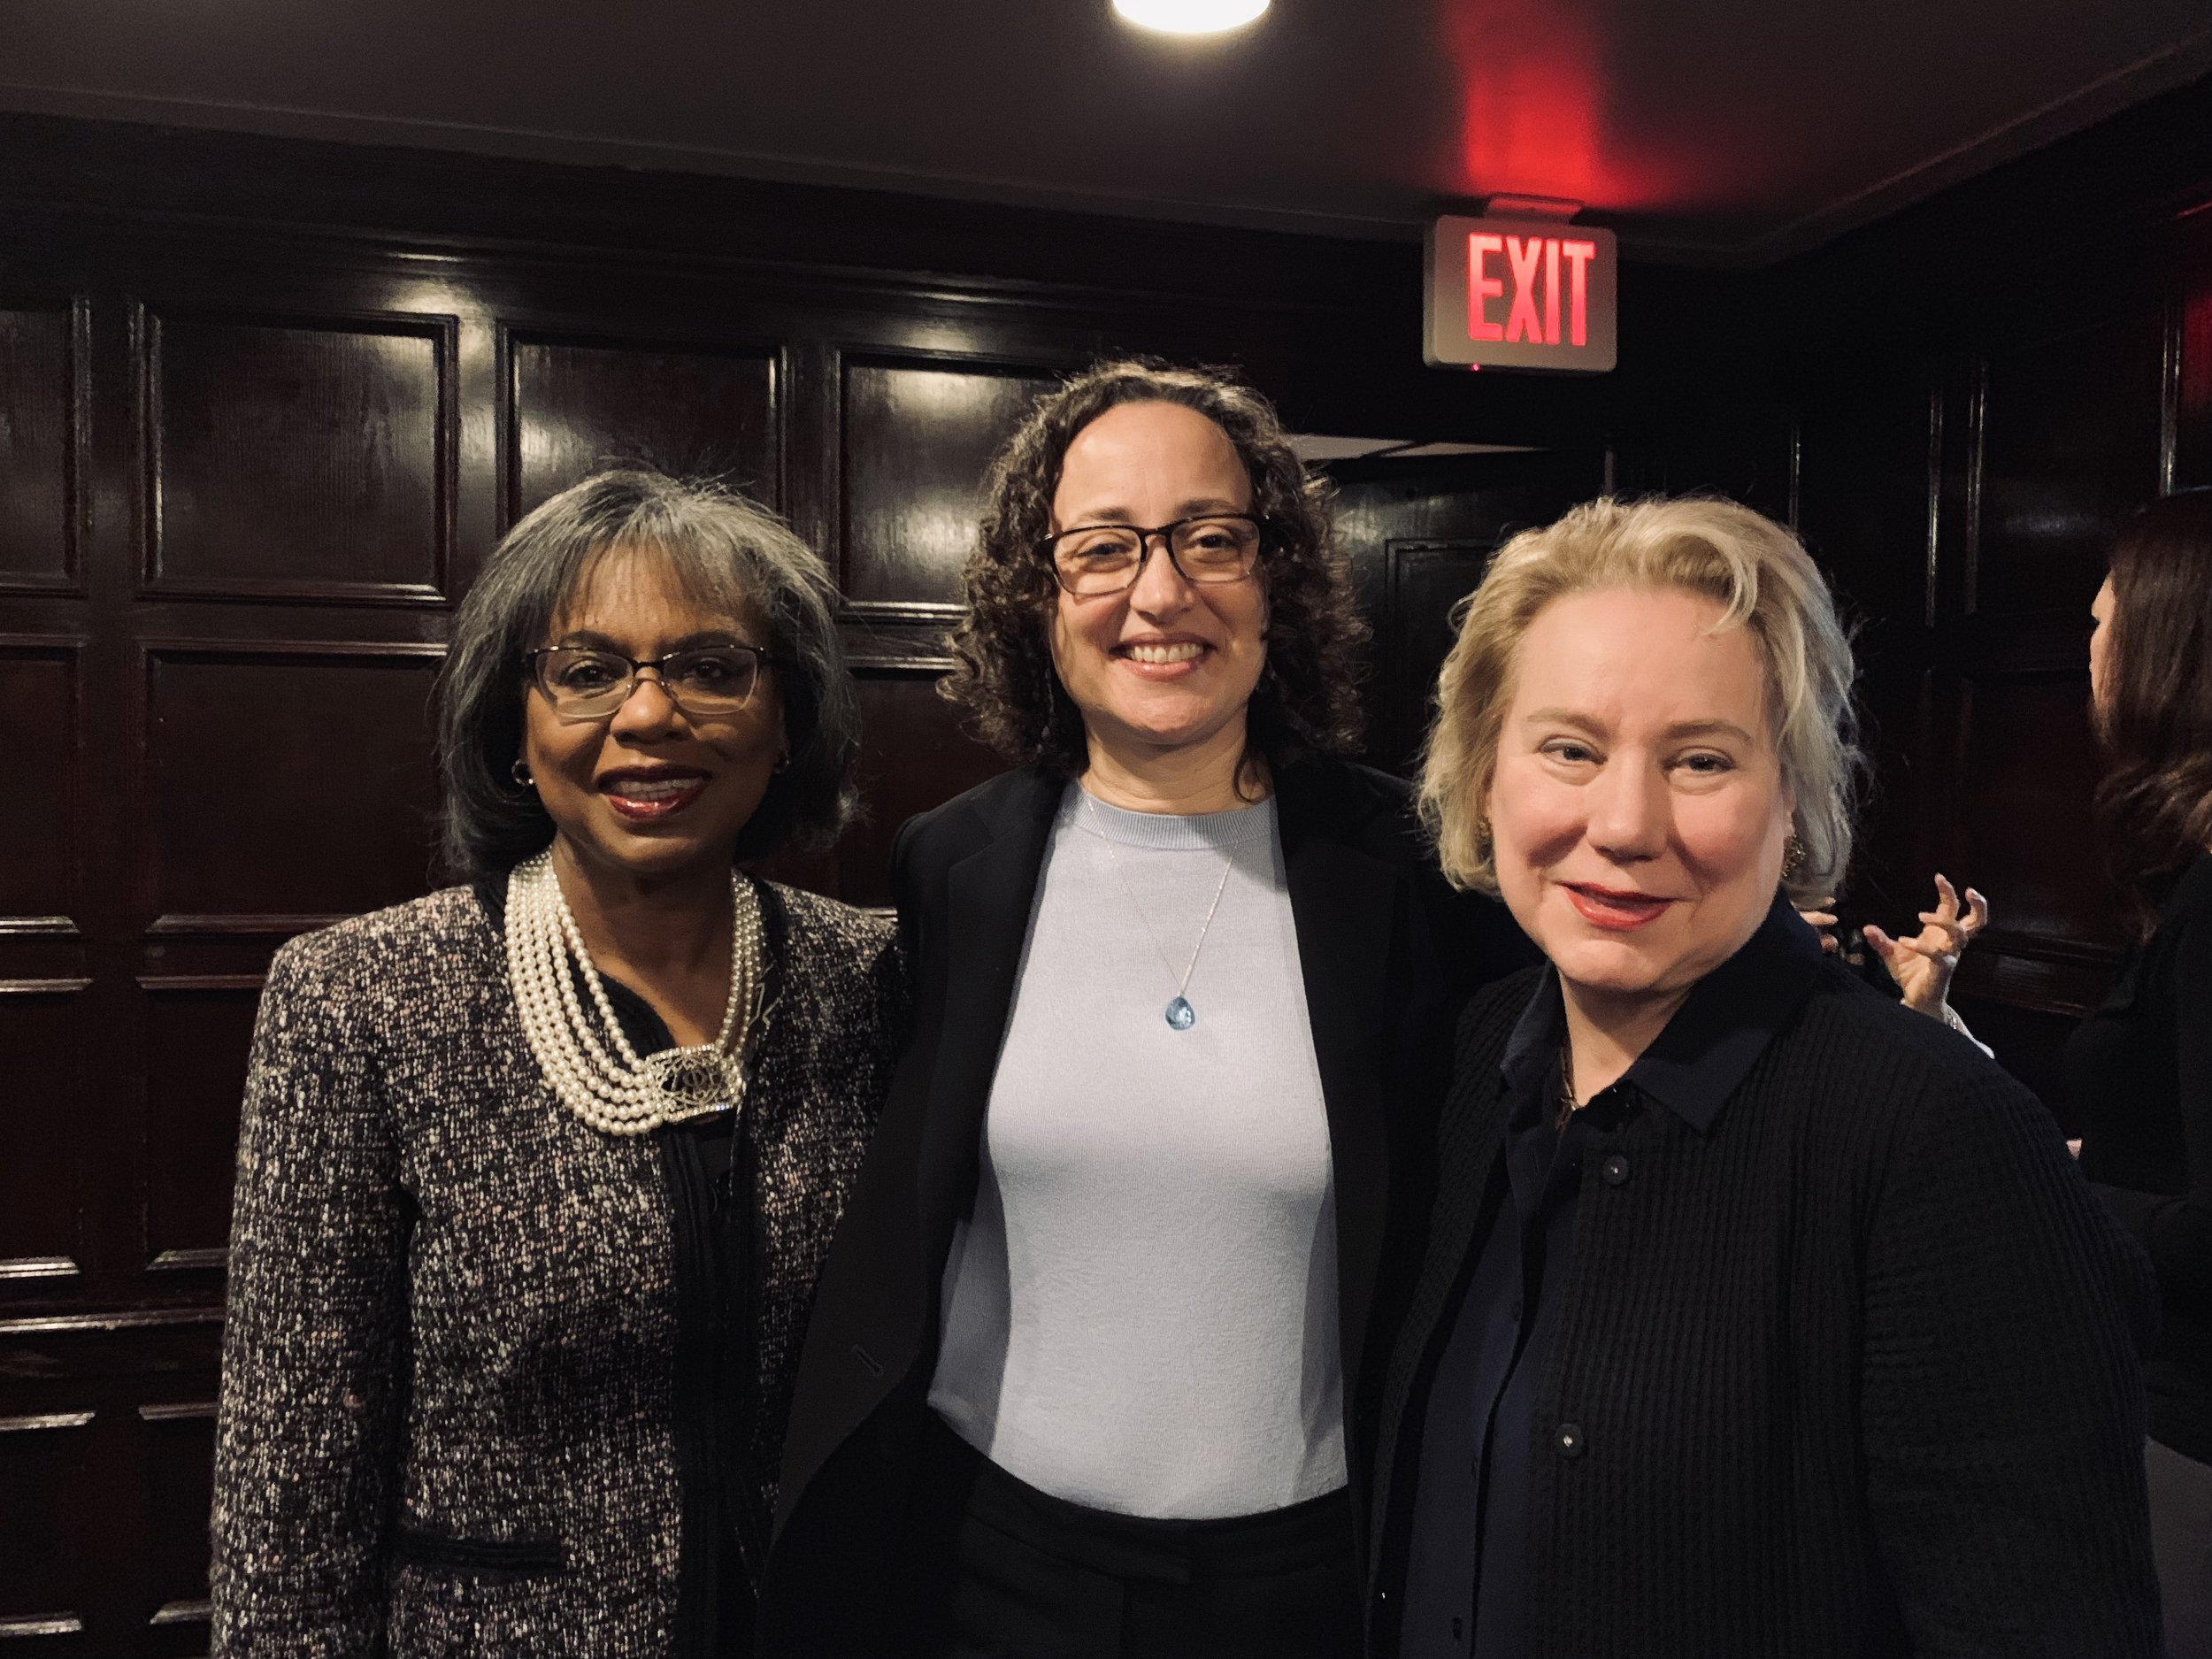 Dr Olivarius, pictured here with Anita Hill and Catherine Lhamon, fellow recipients of YaleWomen's Lifetime Achievement Award